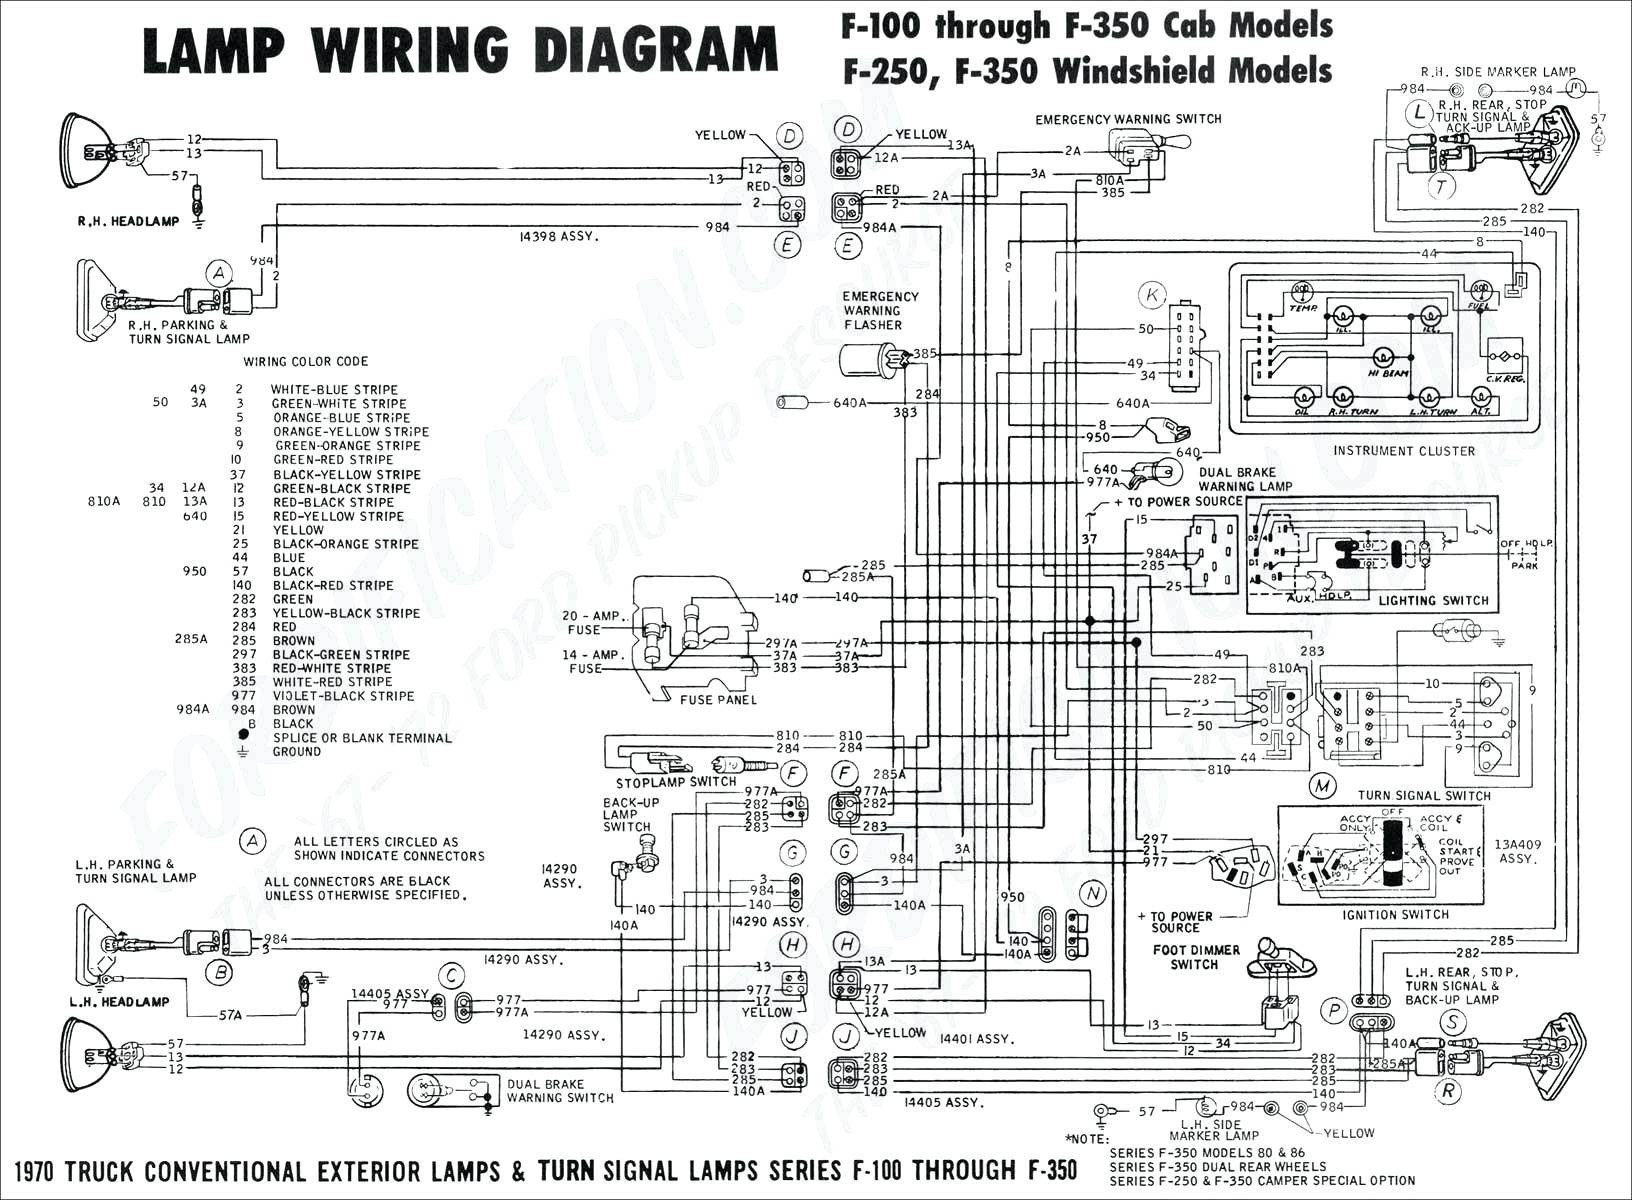 wiring diagram for utility trailer with electric brakes Download-Wiring Diagram Trailer Electric Brakes Inspirationa Wiring Diagram for Utility Trailer with Electric Brakes Refrence 19-l